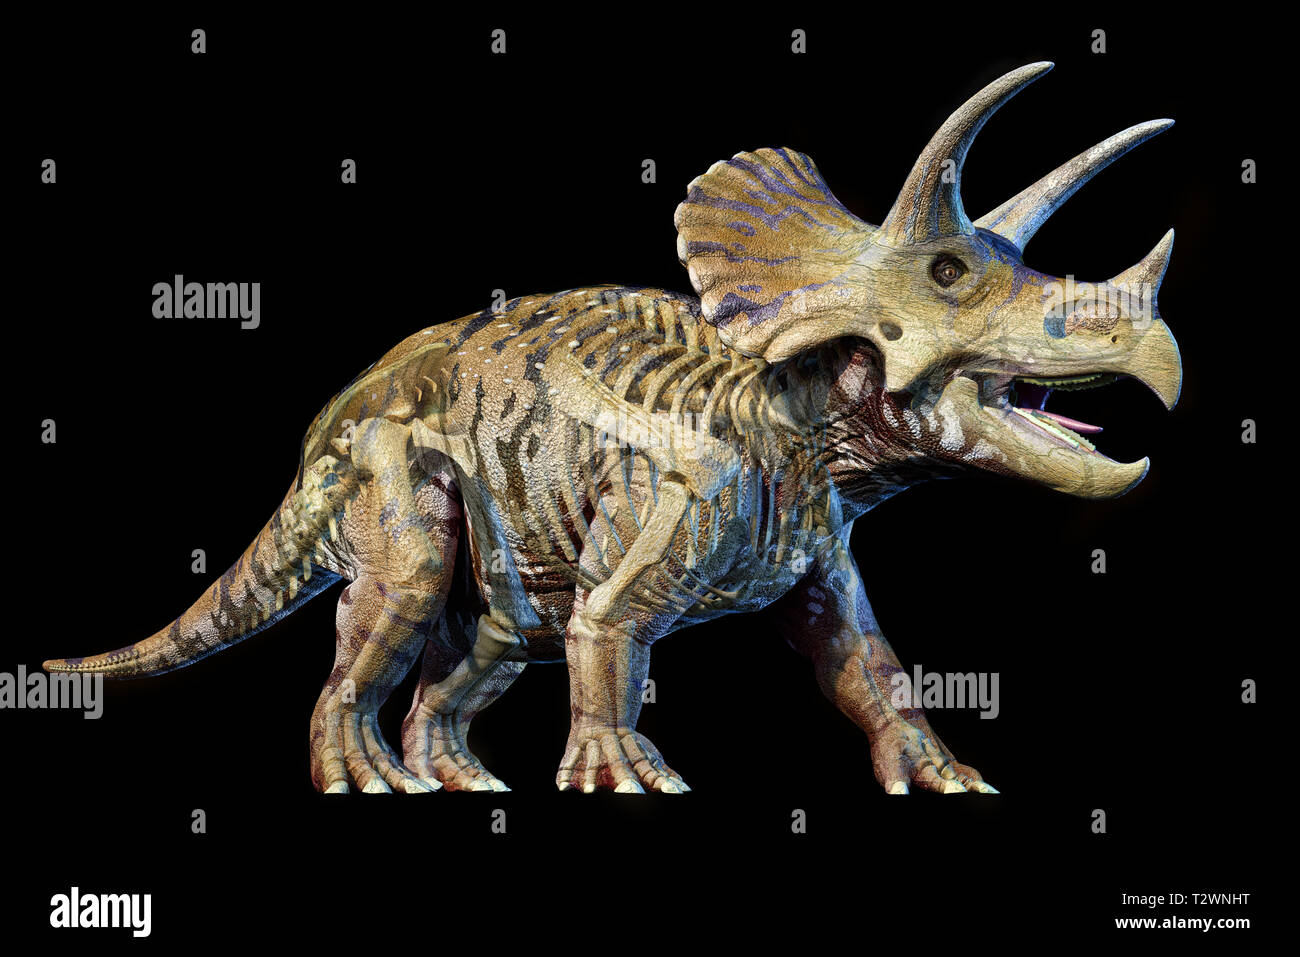 Triceratops with skeleton in ghost effect 3d rendering on black background. - Stock Image